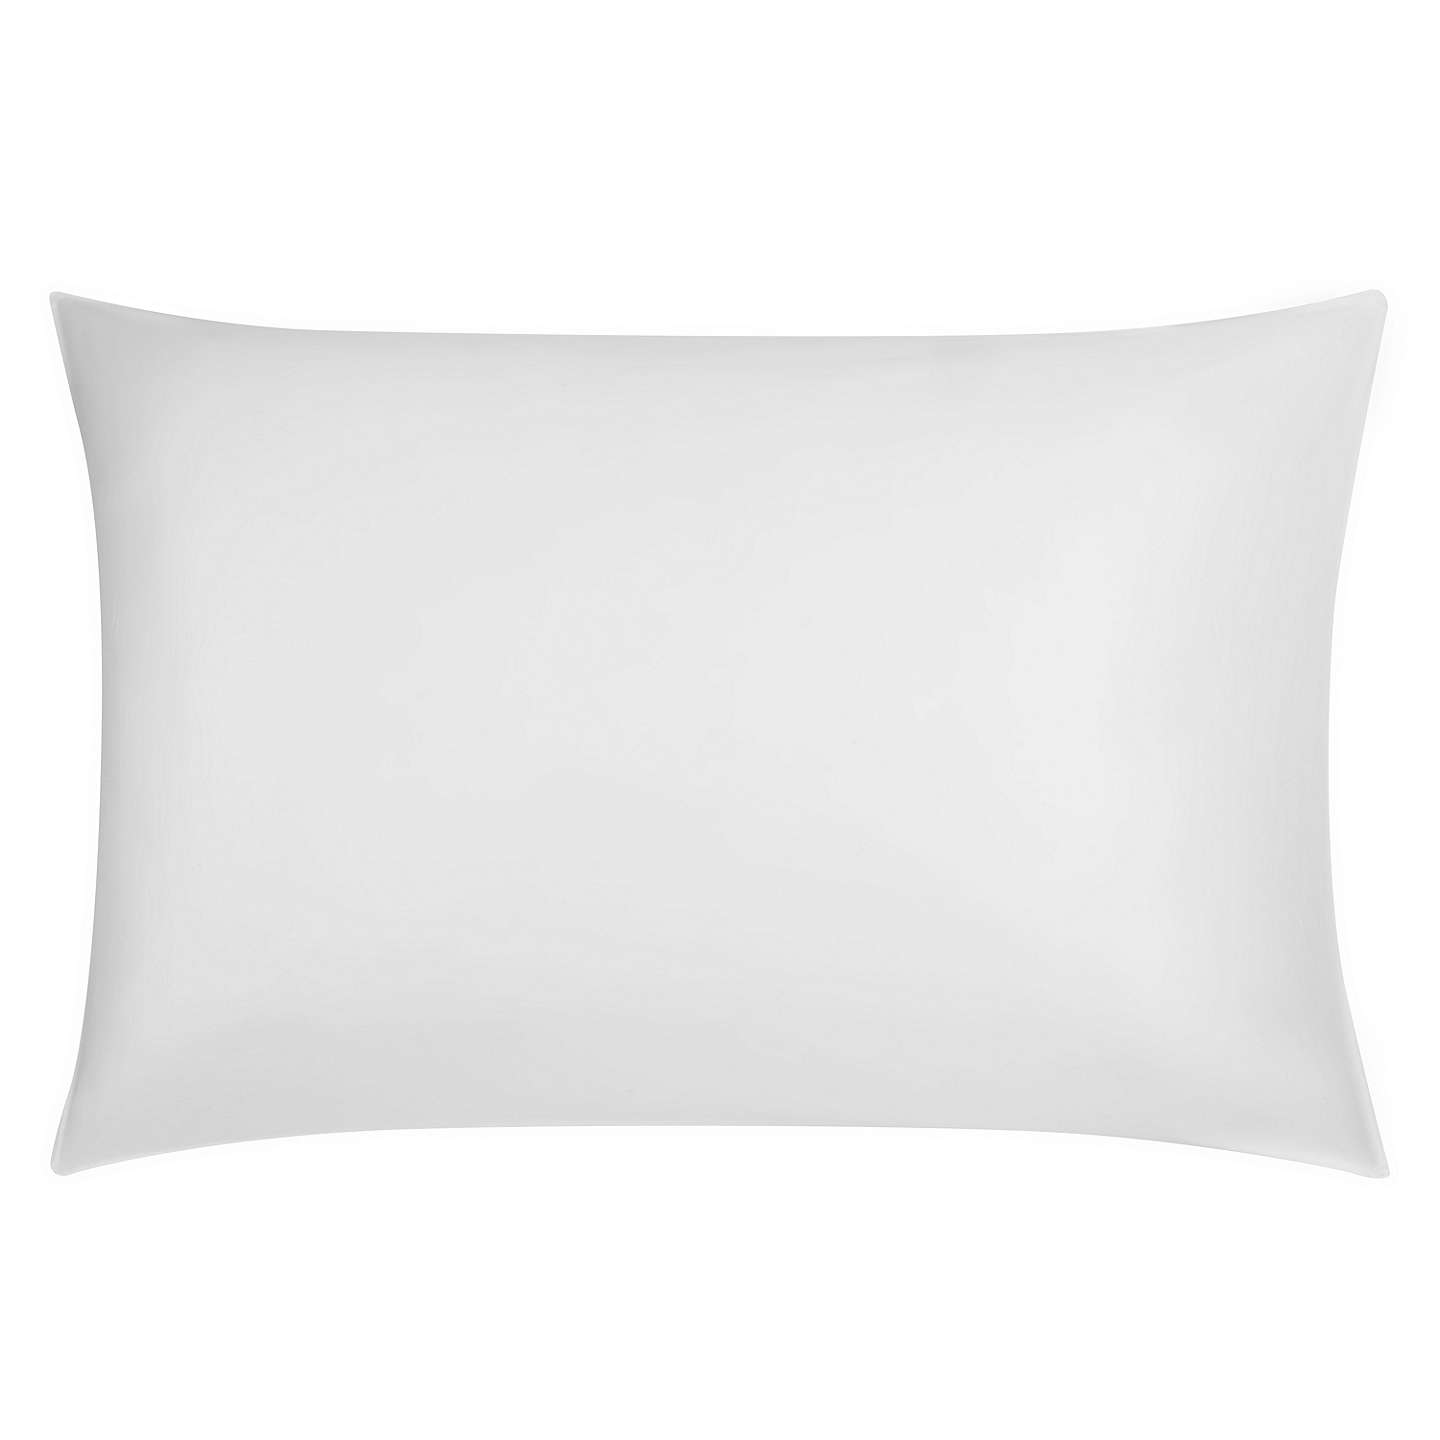 BuyJohn Lewis 400 Thread Count Soft & Silky Egyptian Cotton Pillowcase, White, Standard Online at johnlewis.com